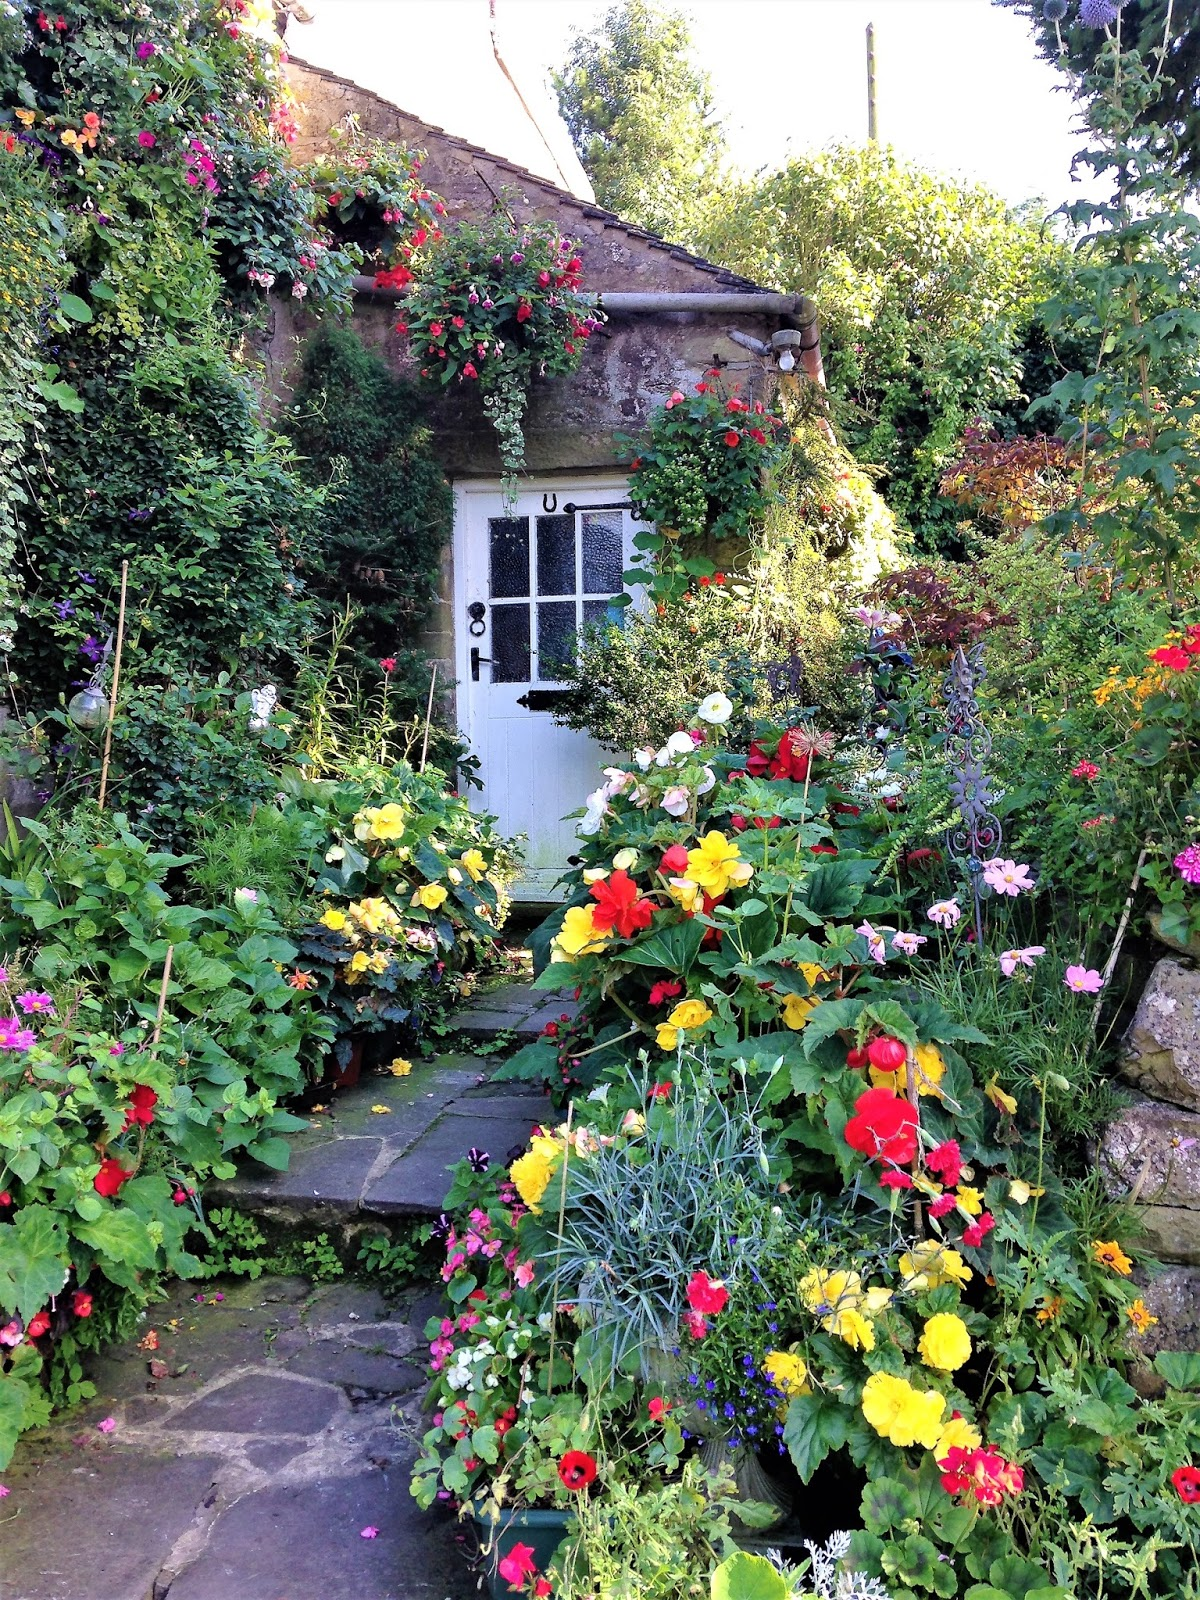 I Wonu0027t Pretend To Know A Great Deal About Gardening But I Do Know That  When It Comes To Planting A Cottage Garden, Informality Is Key, And That  Style Has ...